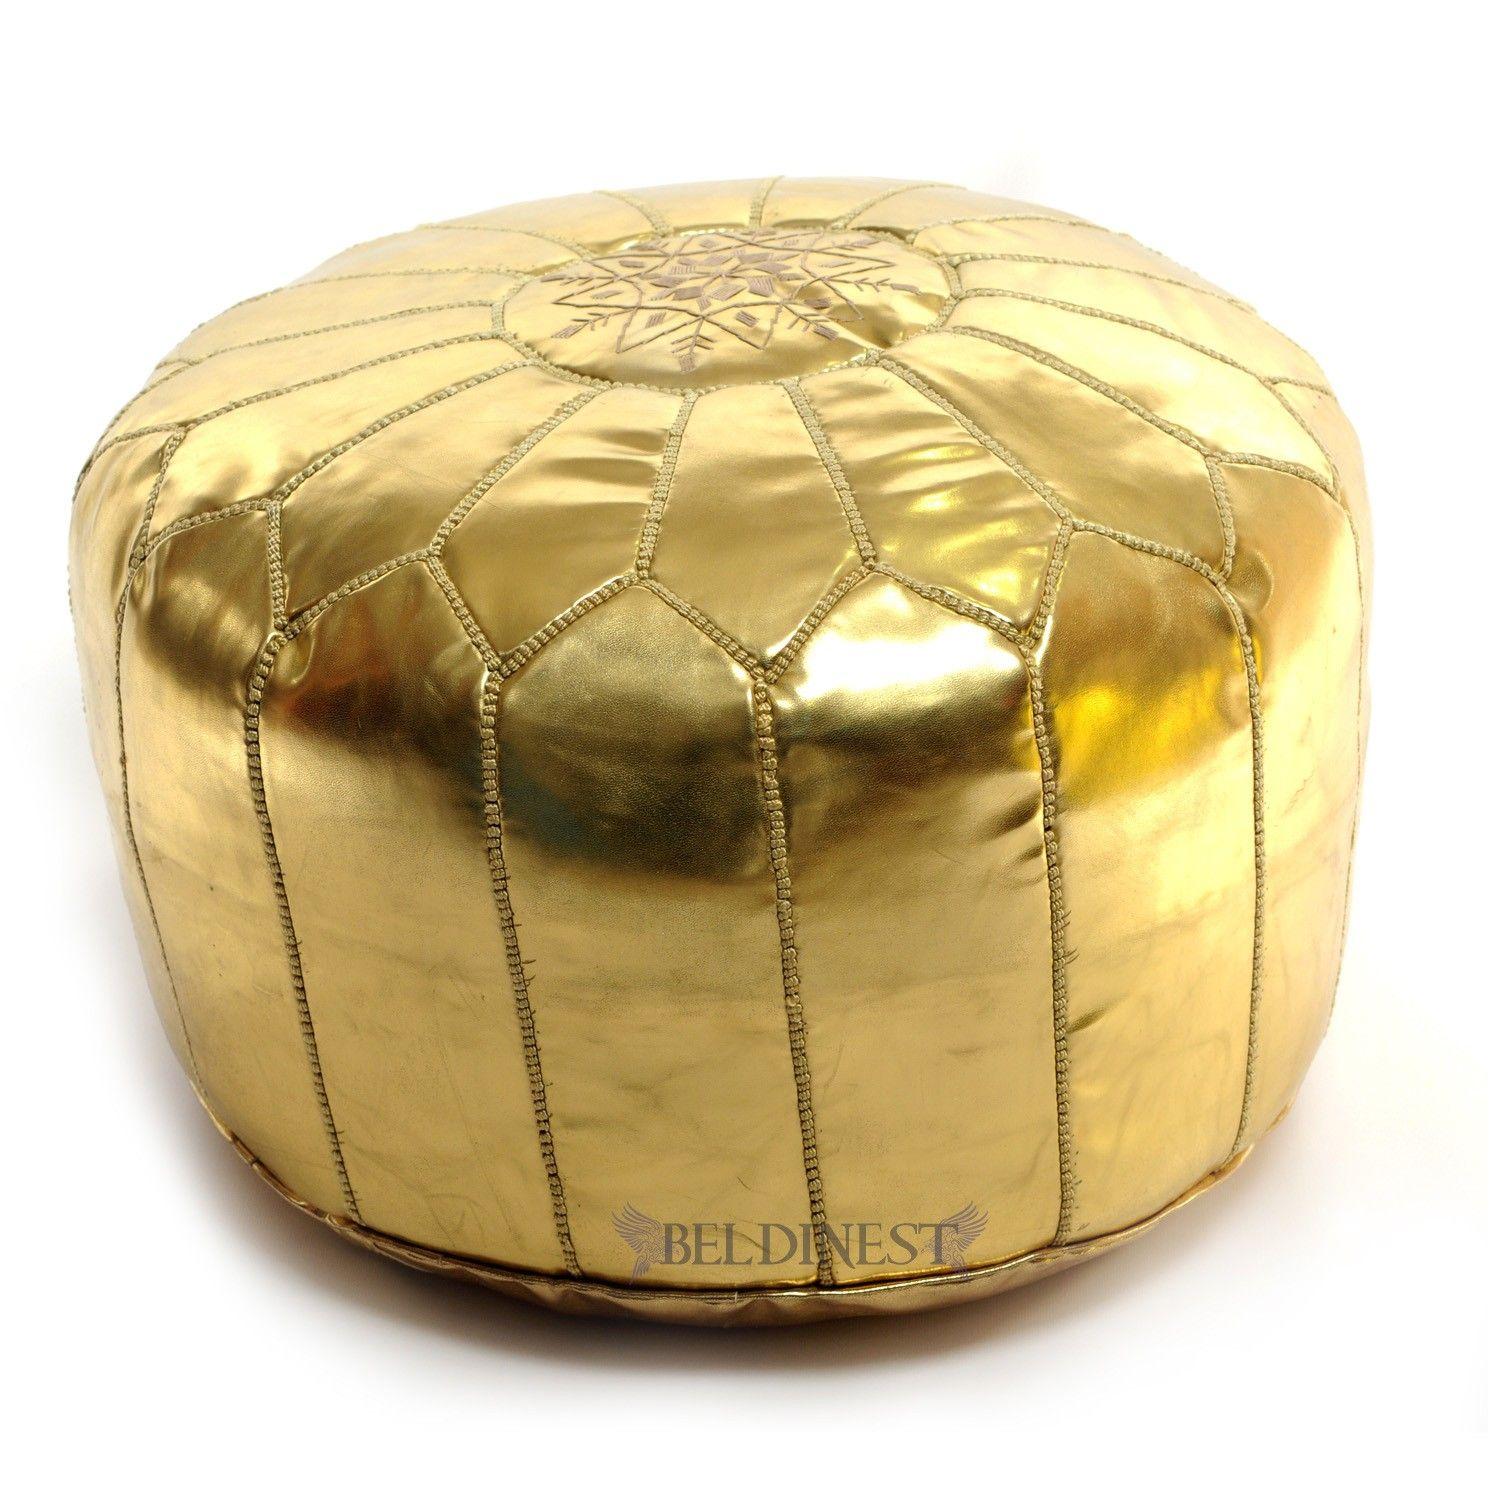 Square handcrafted moroccan leather pouf dark tan pouf pouffe ottoman - Moroccan Pouf Ottoman Gold Ski Leather Pouf Round Ottoman Foot Stool